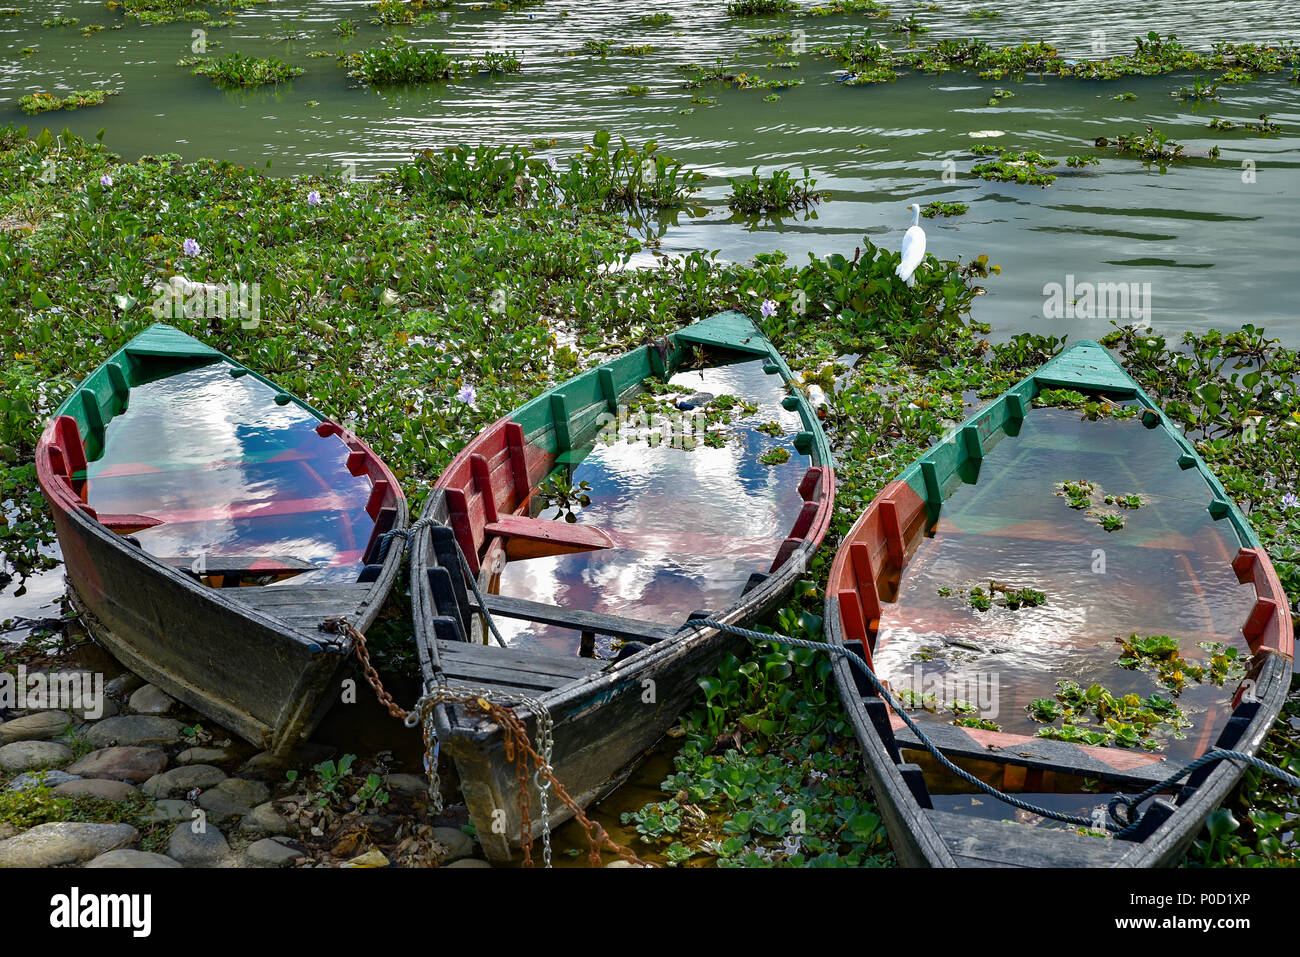 Boats on Fewa Lake, Pokhara, Nepal - Stock Image